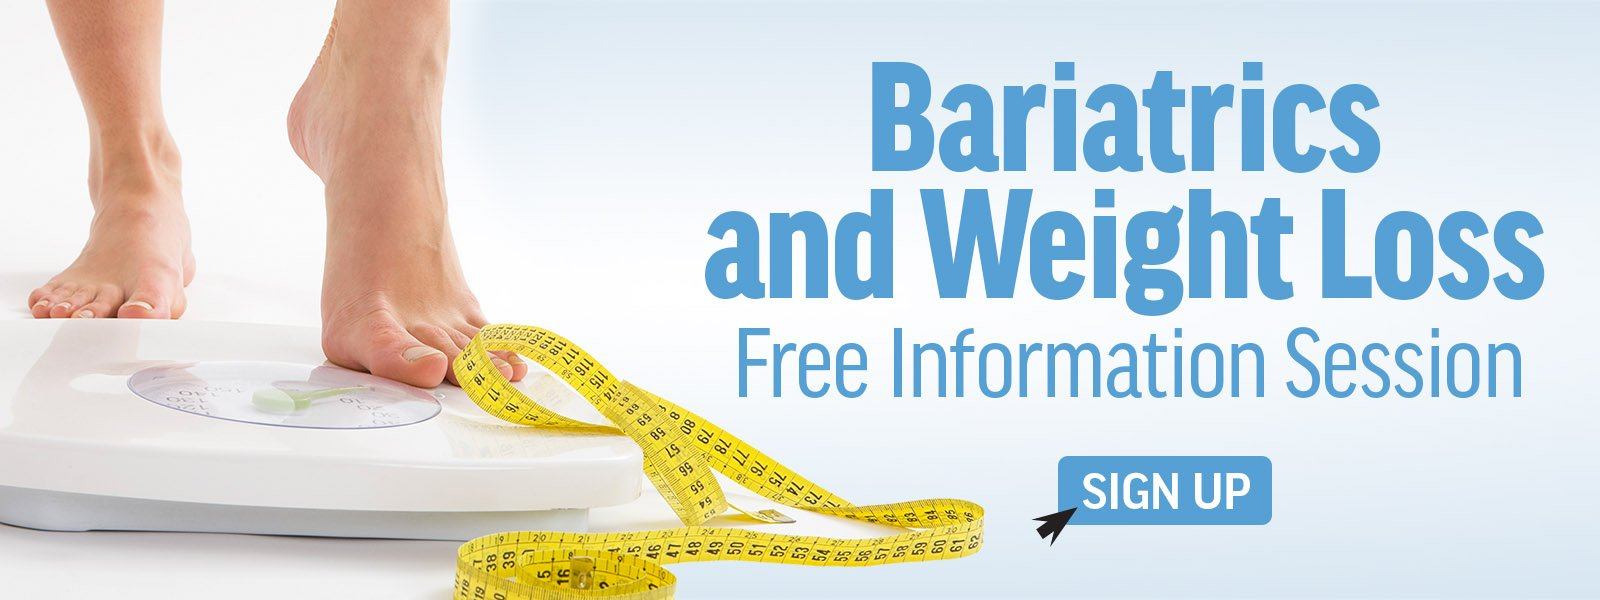 Bariatrics and Weight Loss